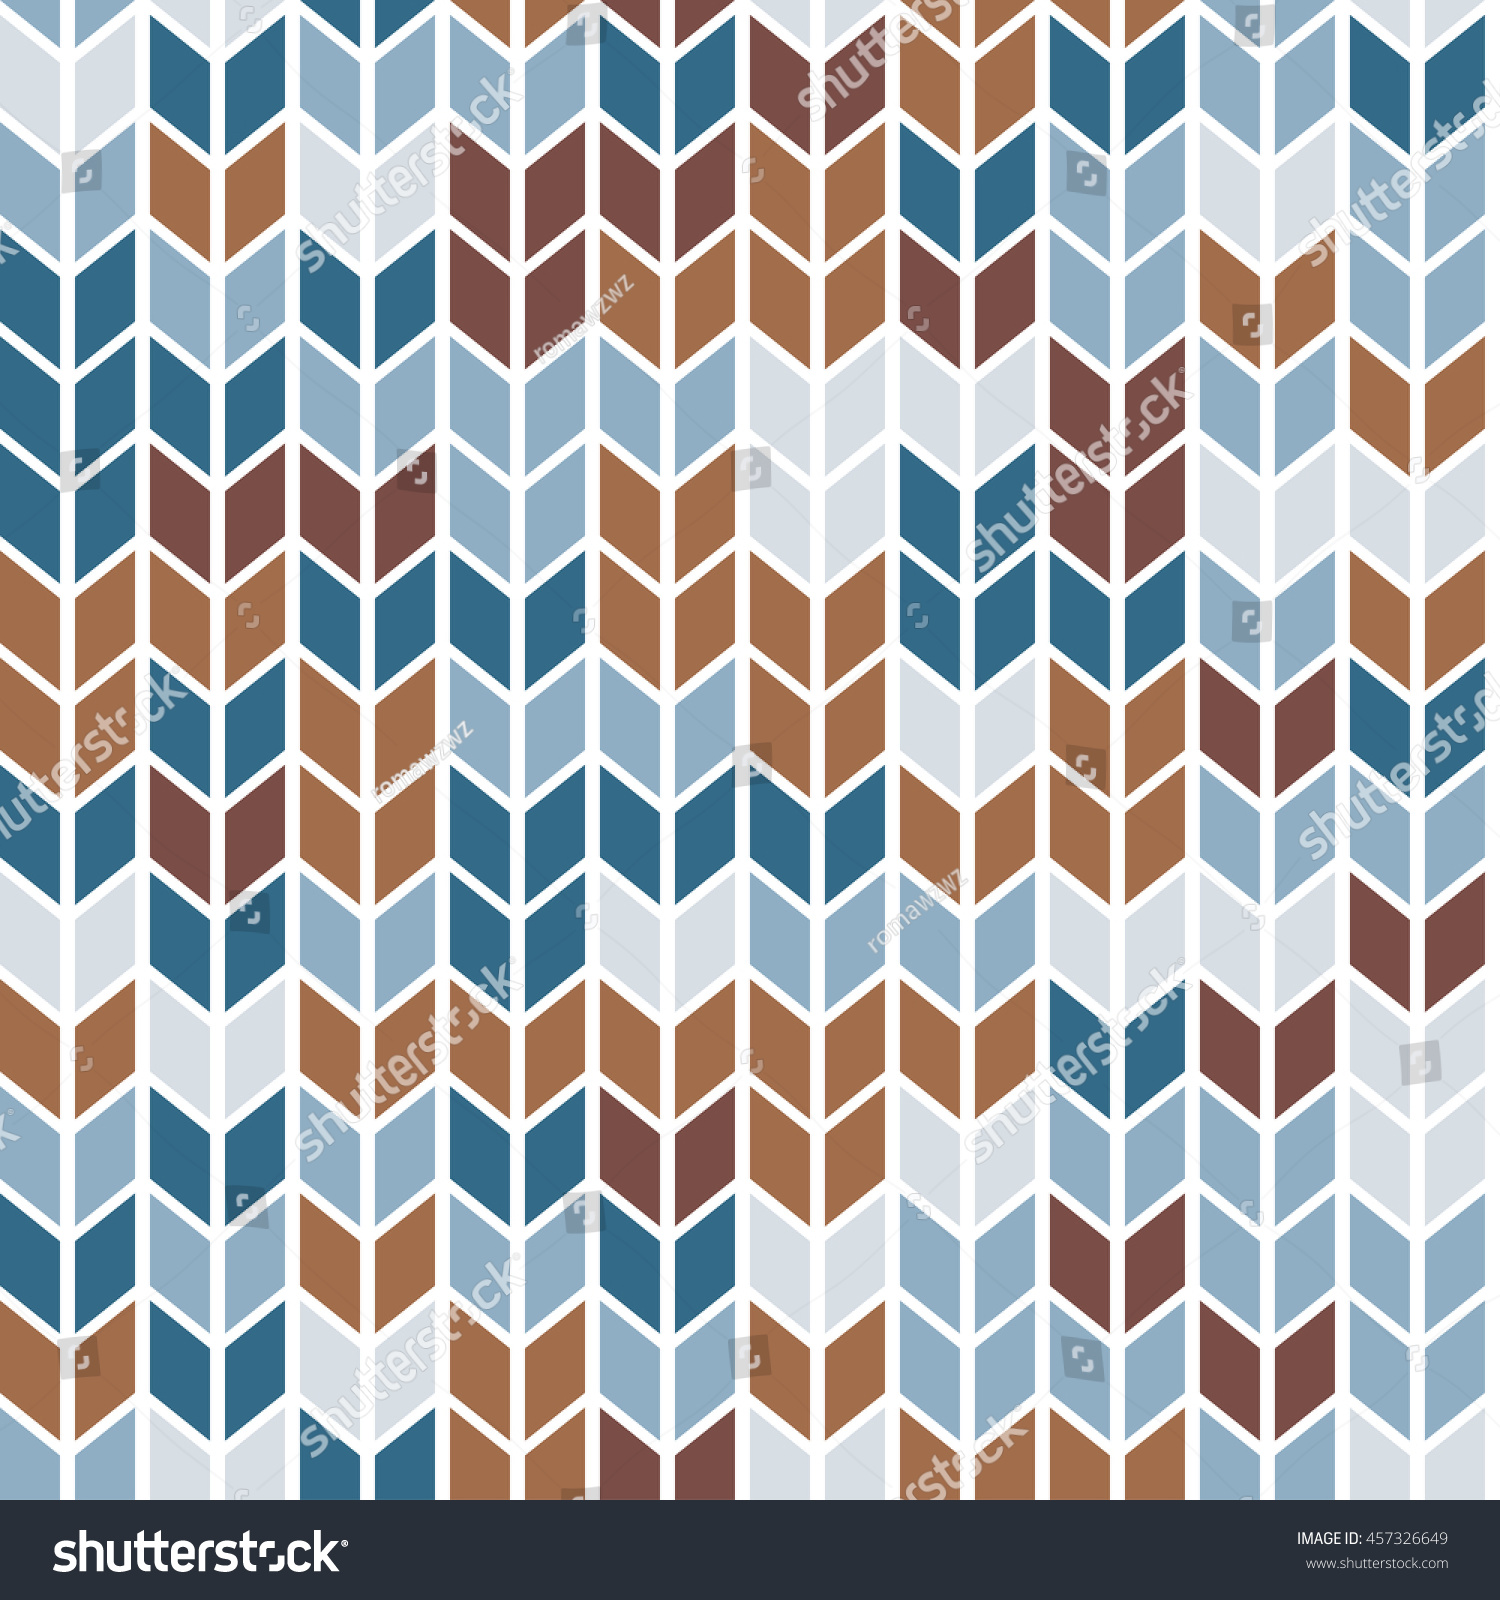 Abstract geometric seamless pattern stock vector 457326649 for Object pool design pattern